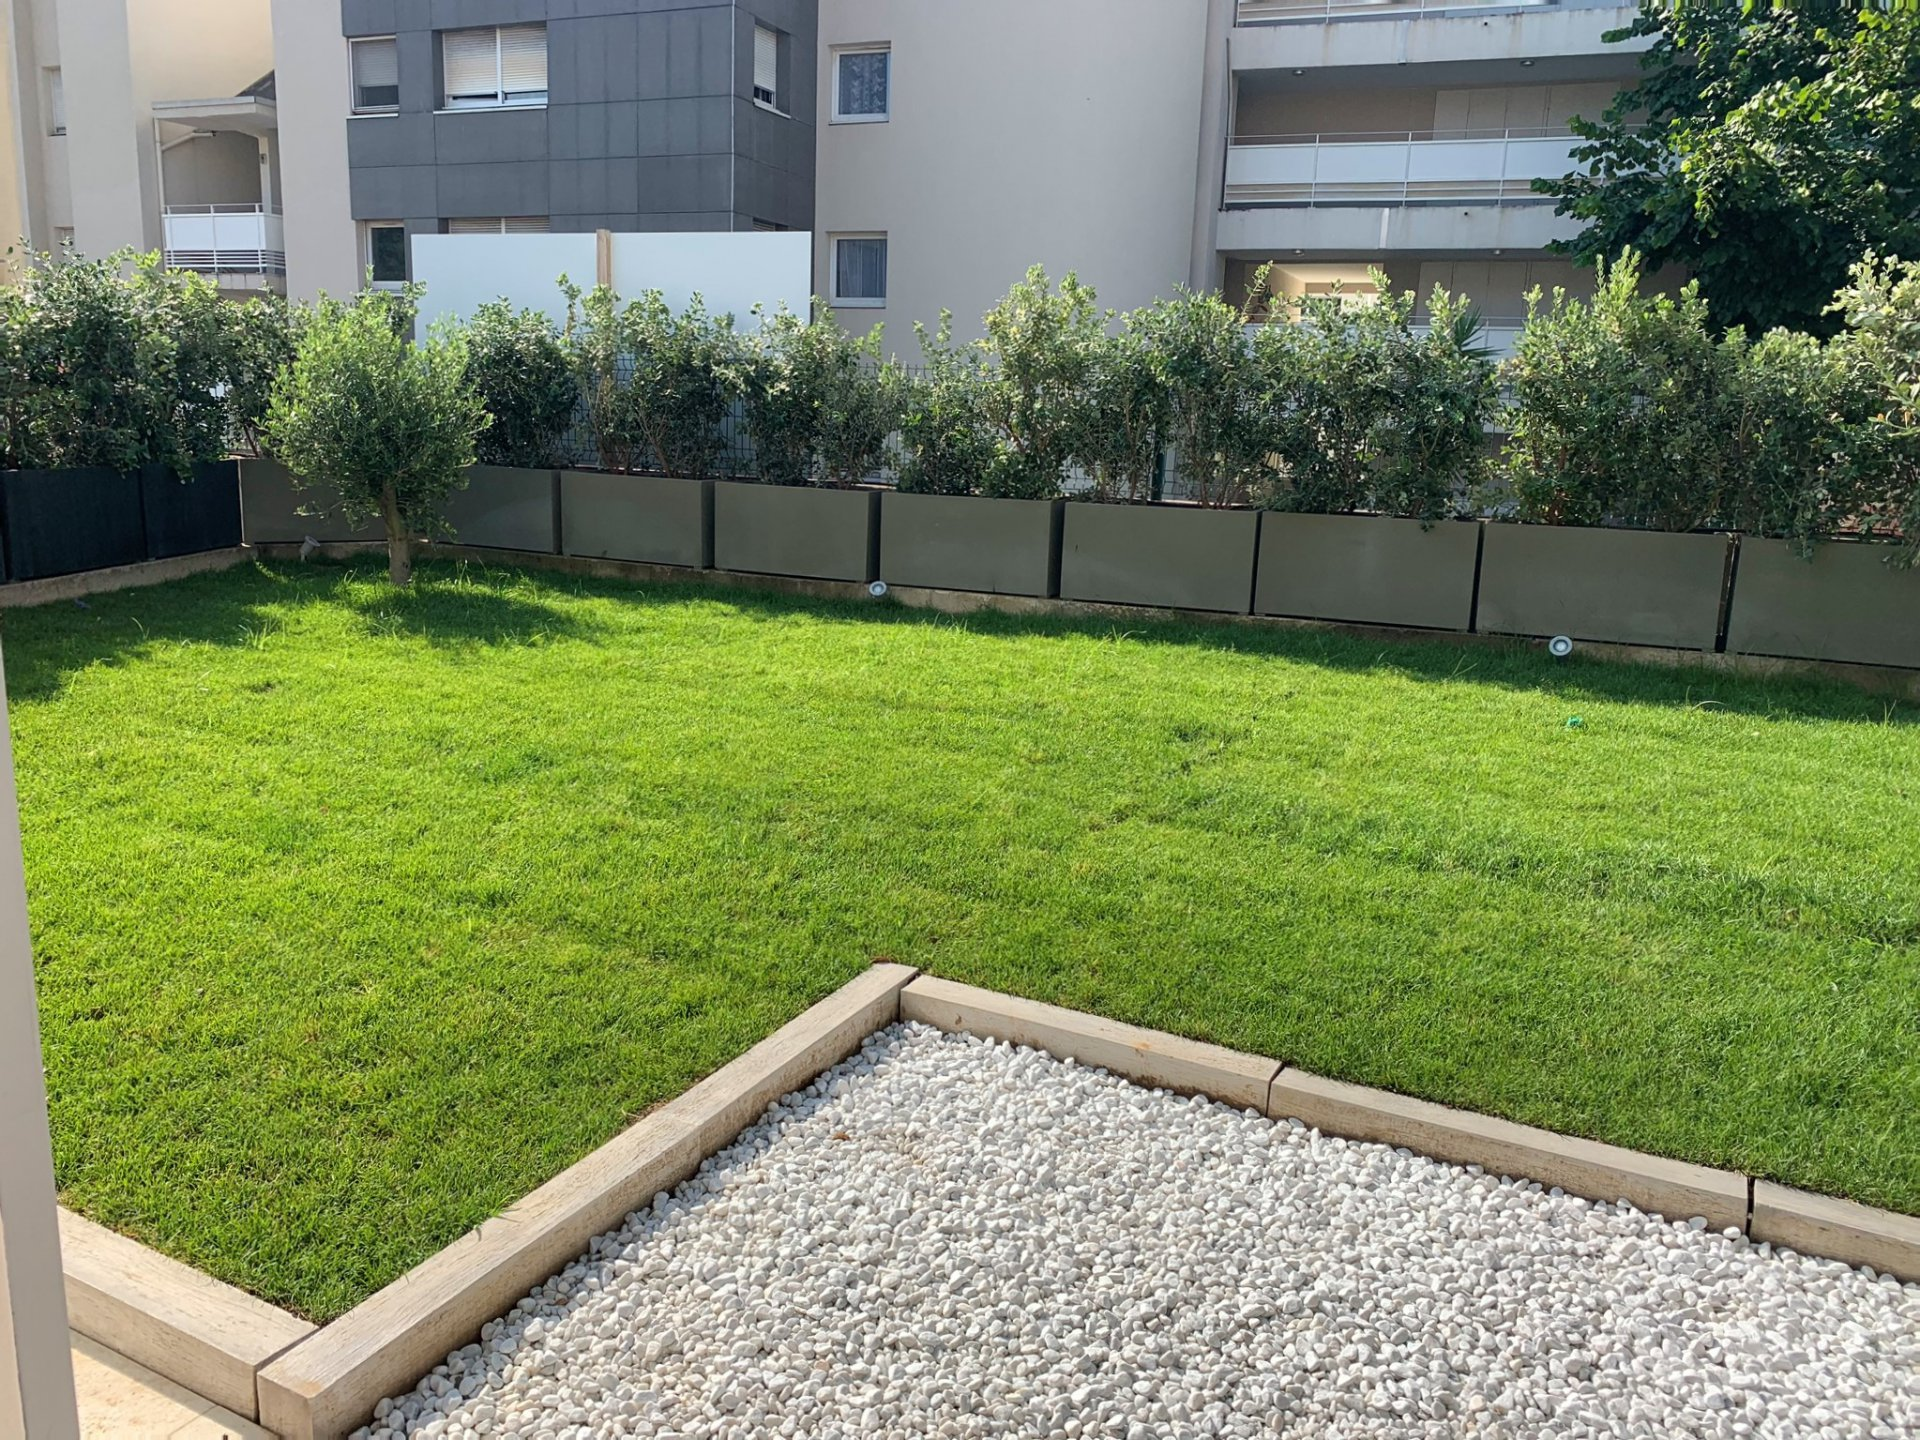 Splendid apartment 1 bedroom apartment  Ground garden 47 sqm with garden 53 sqm south facing